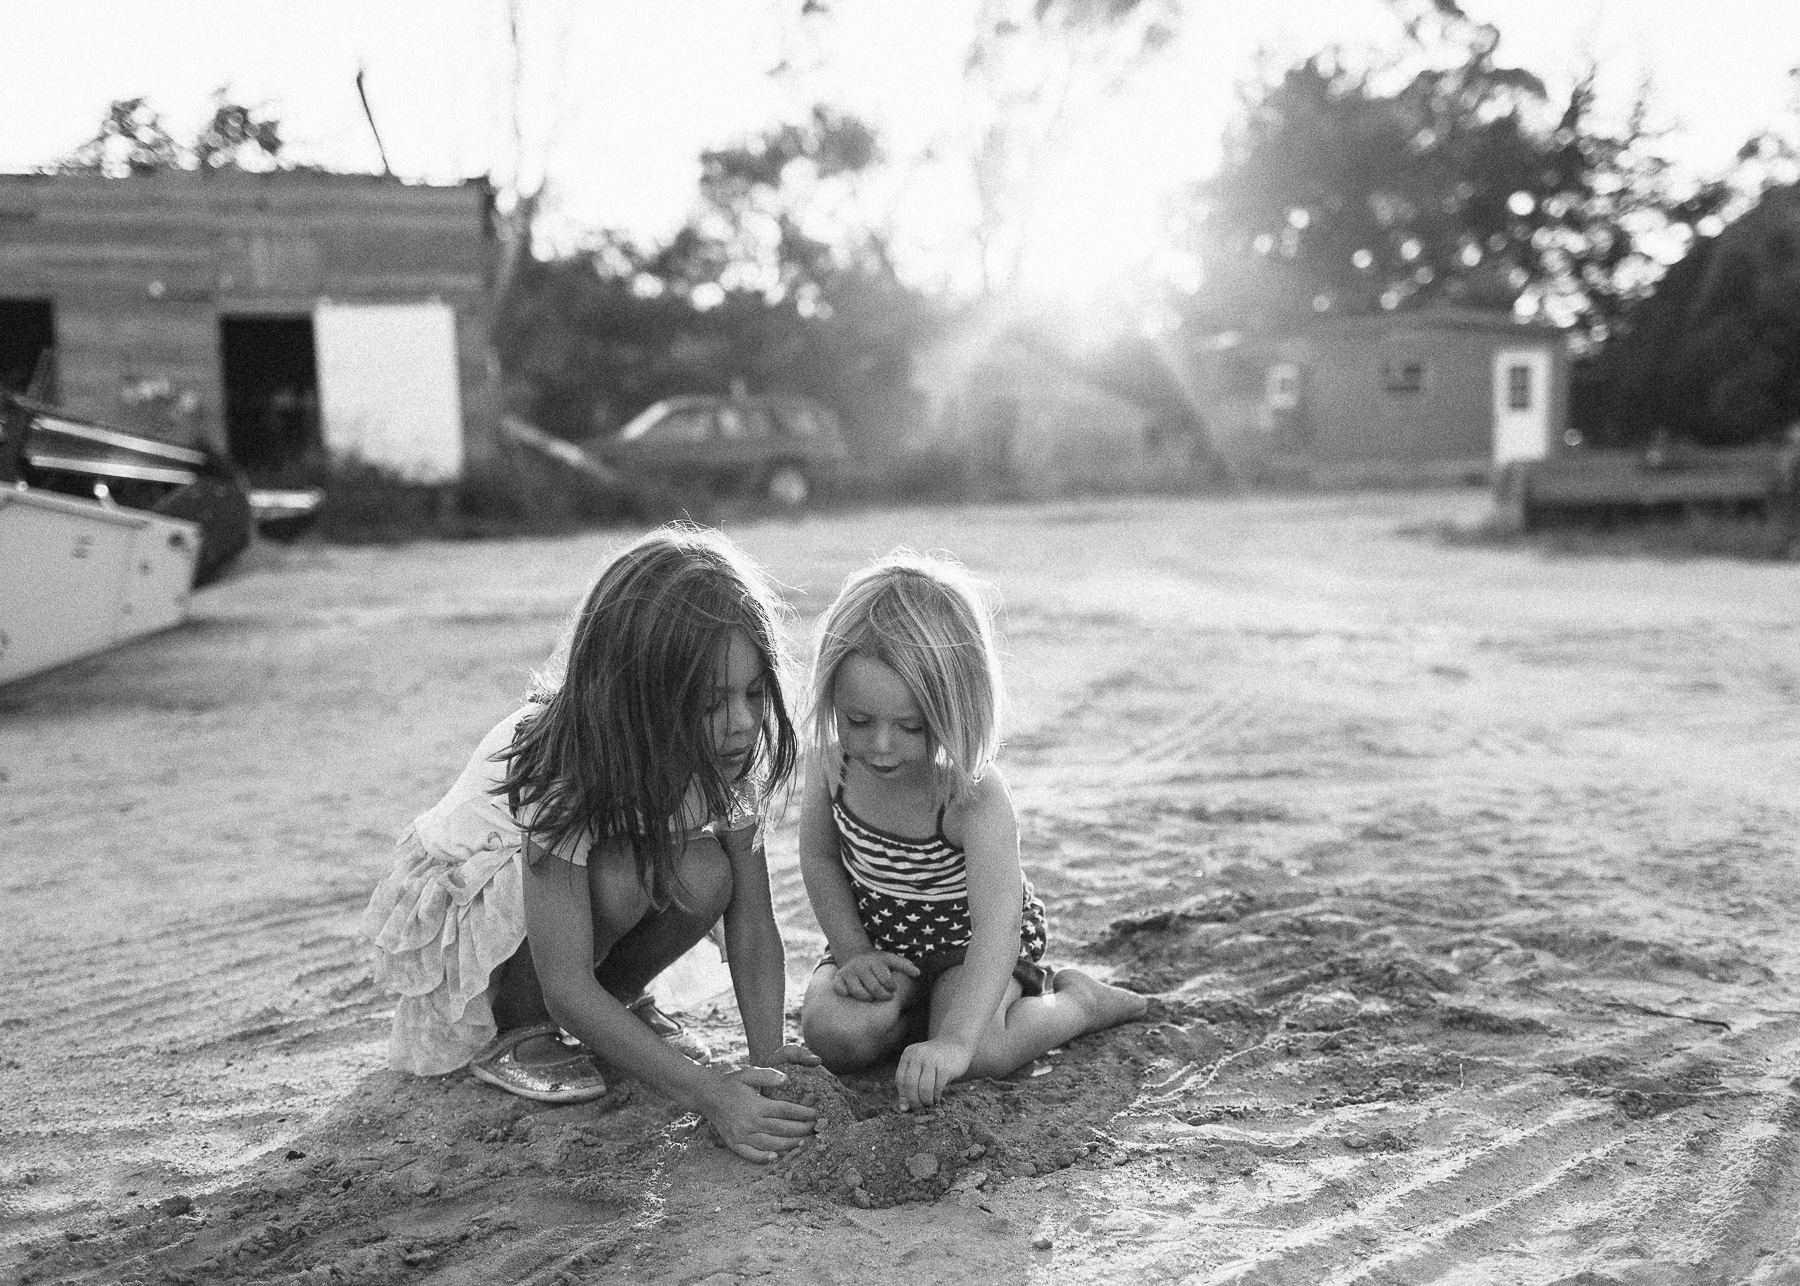 girls digging in dirt together at sunset